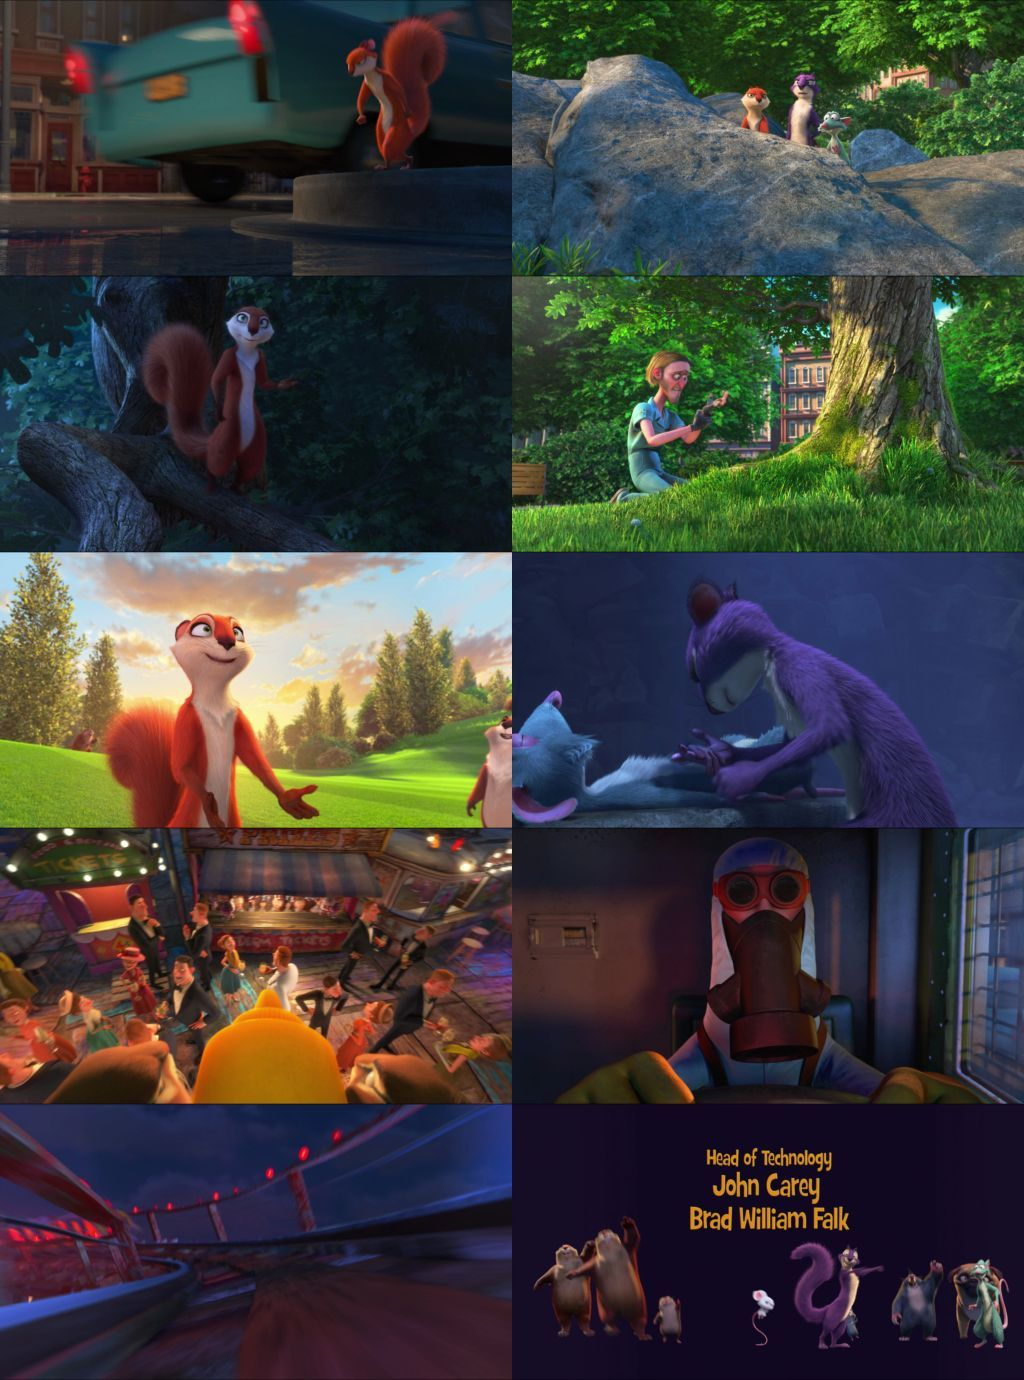 The Nut Job 2 Nutty by Nature (2017) 1080p BluRay x264-GECKOS